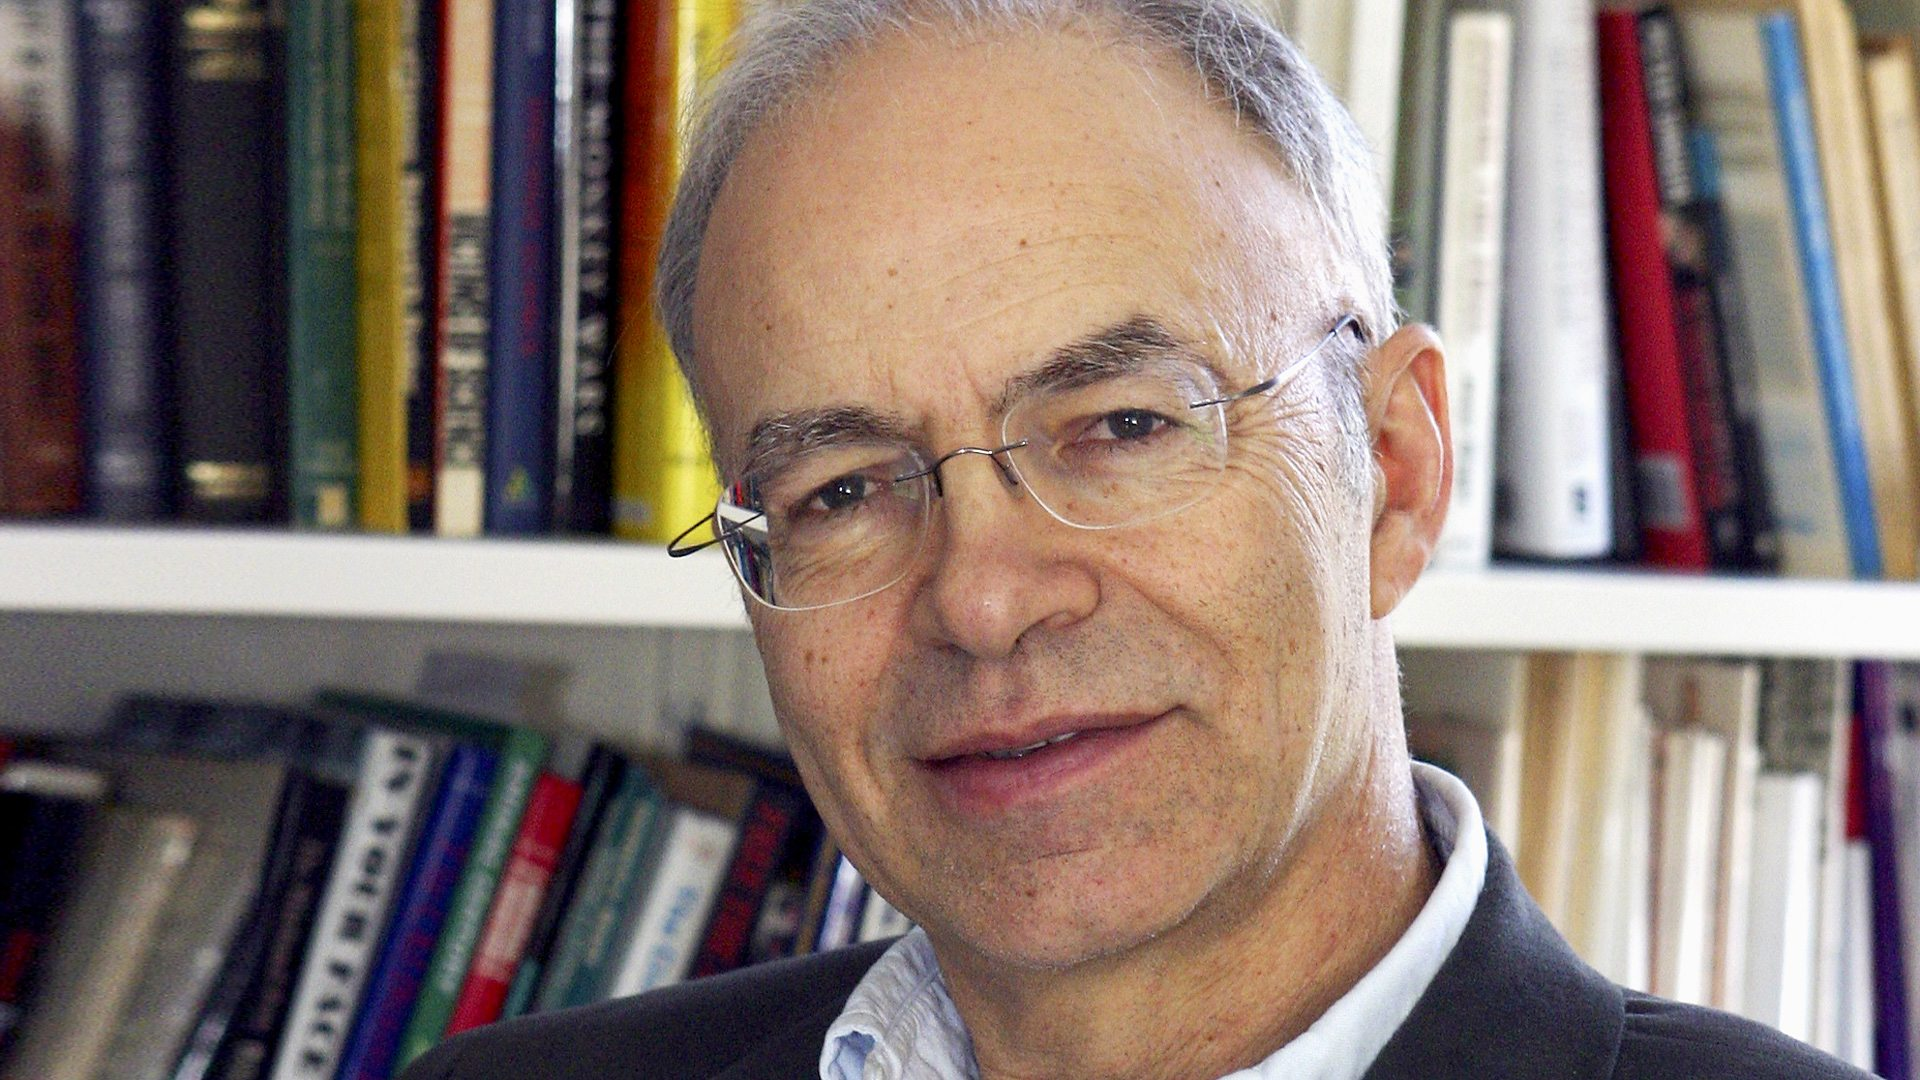 radio 3 thinking peter singer